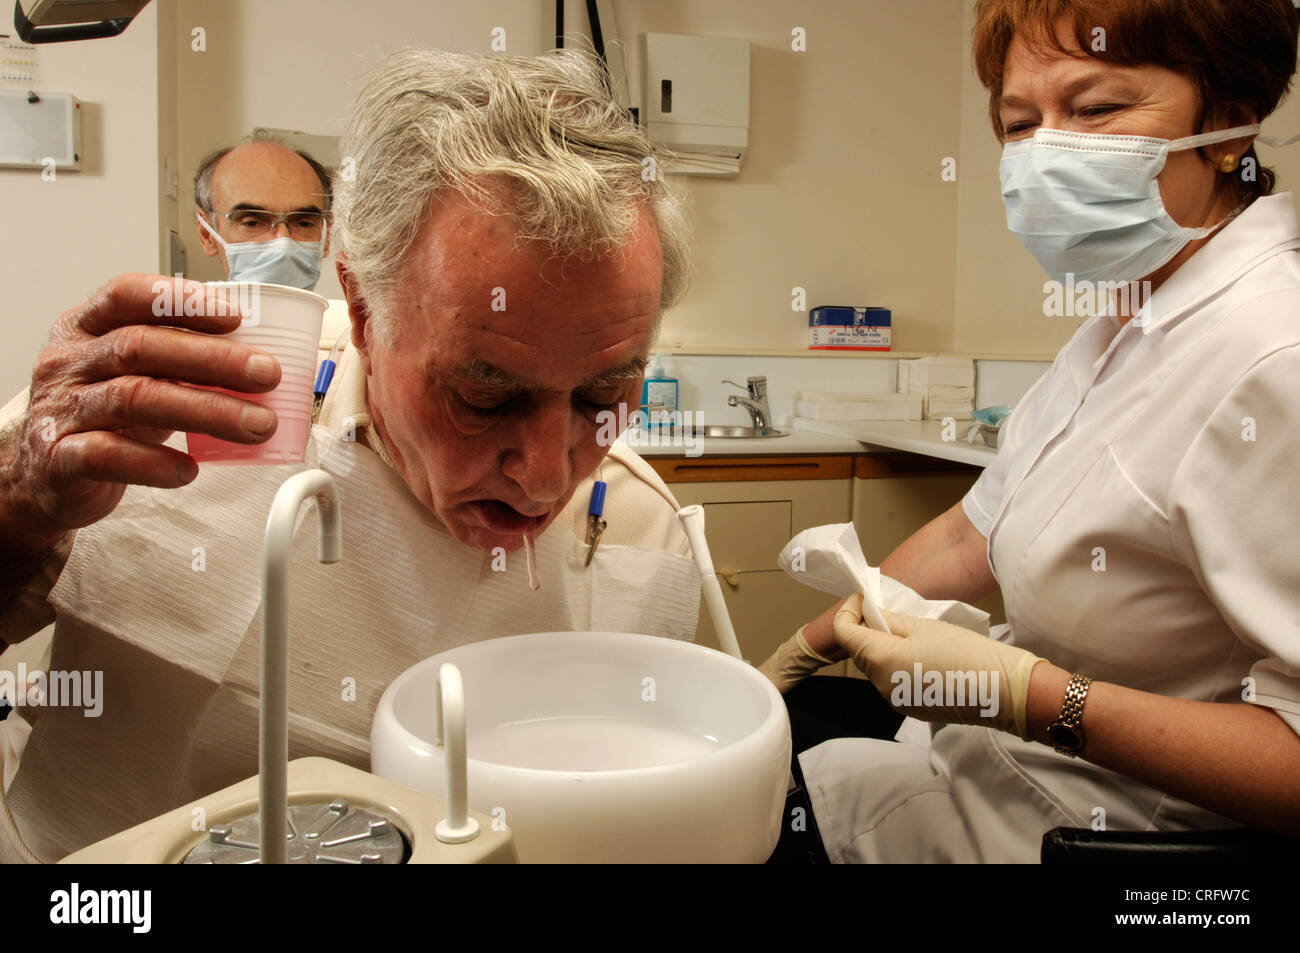 An elderly man rinsing his mouth out with anti-microbial solution, watched by the dentist and his assistant. - Stock Image